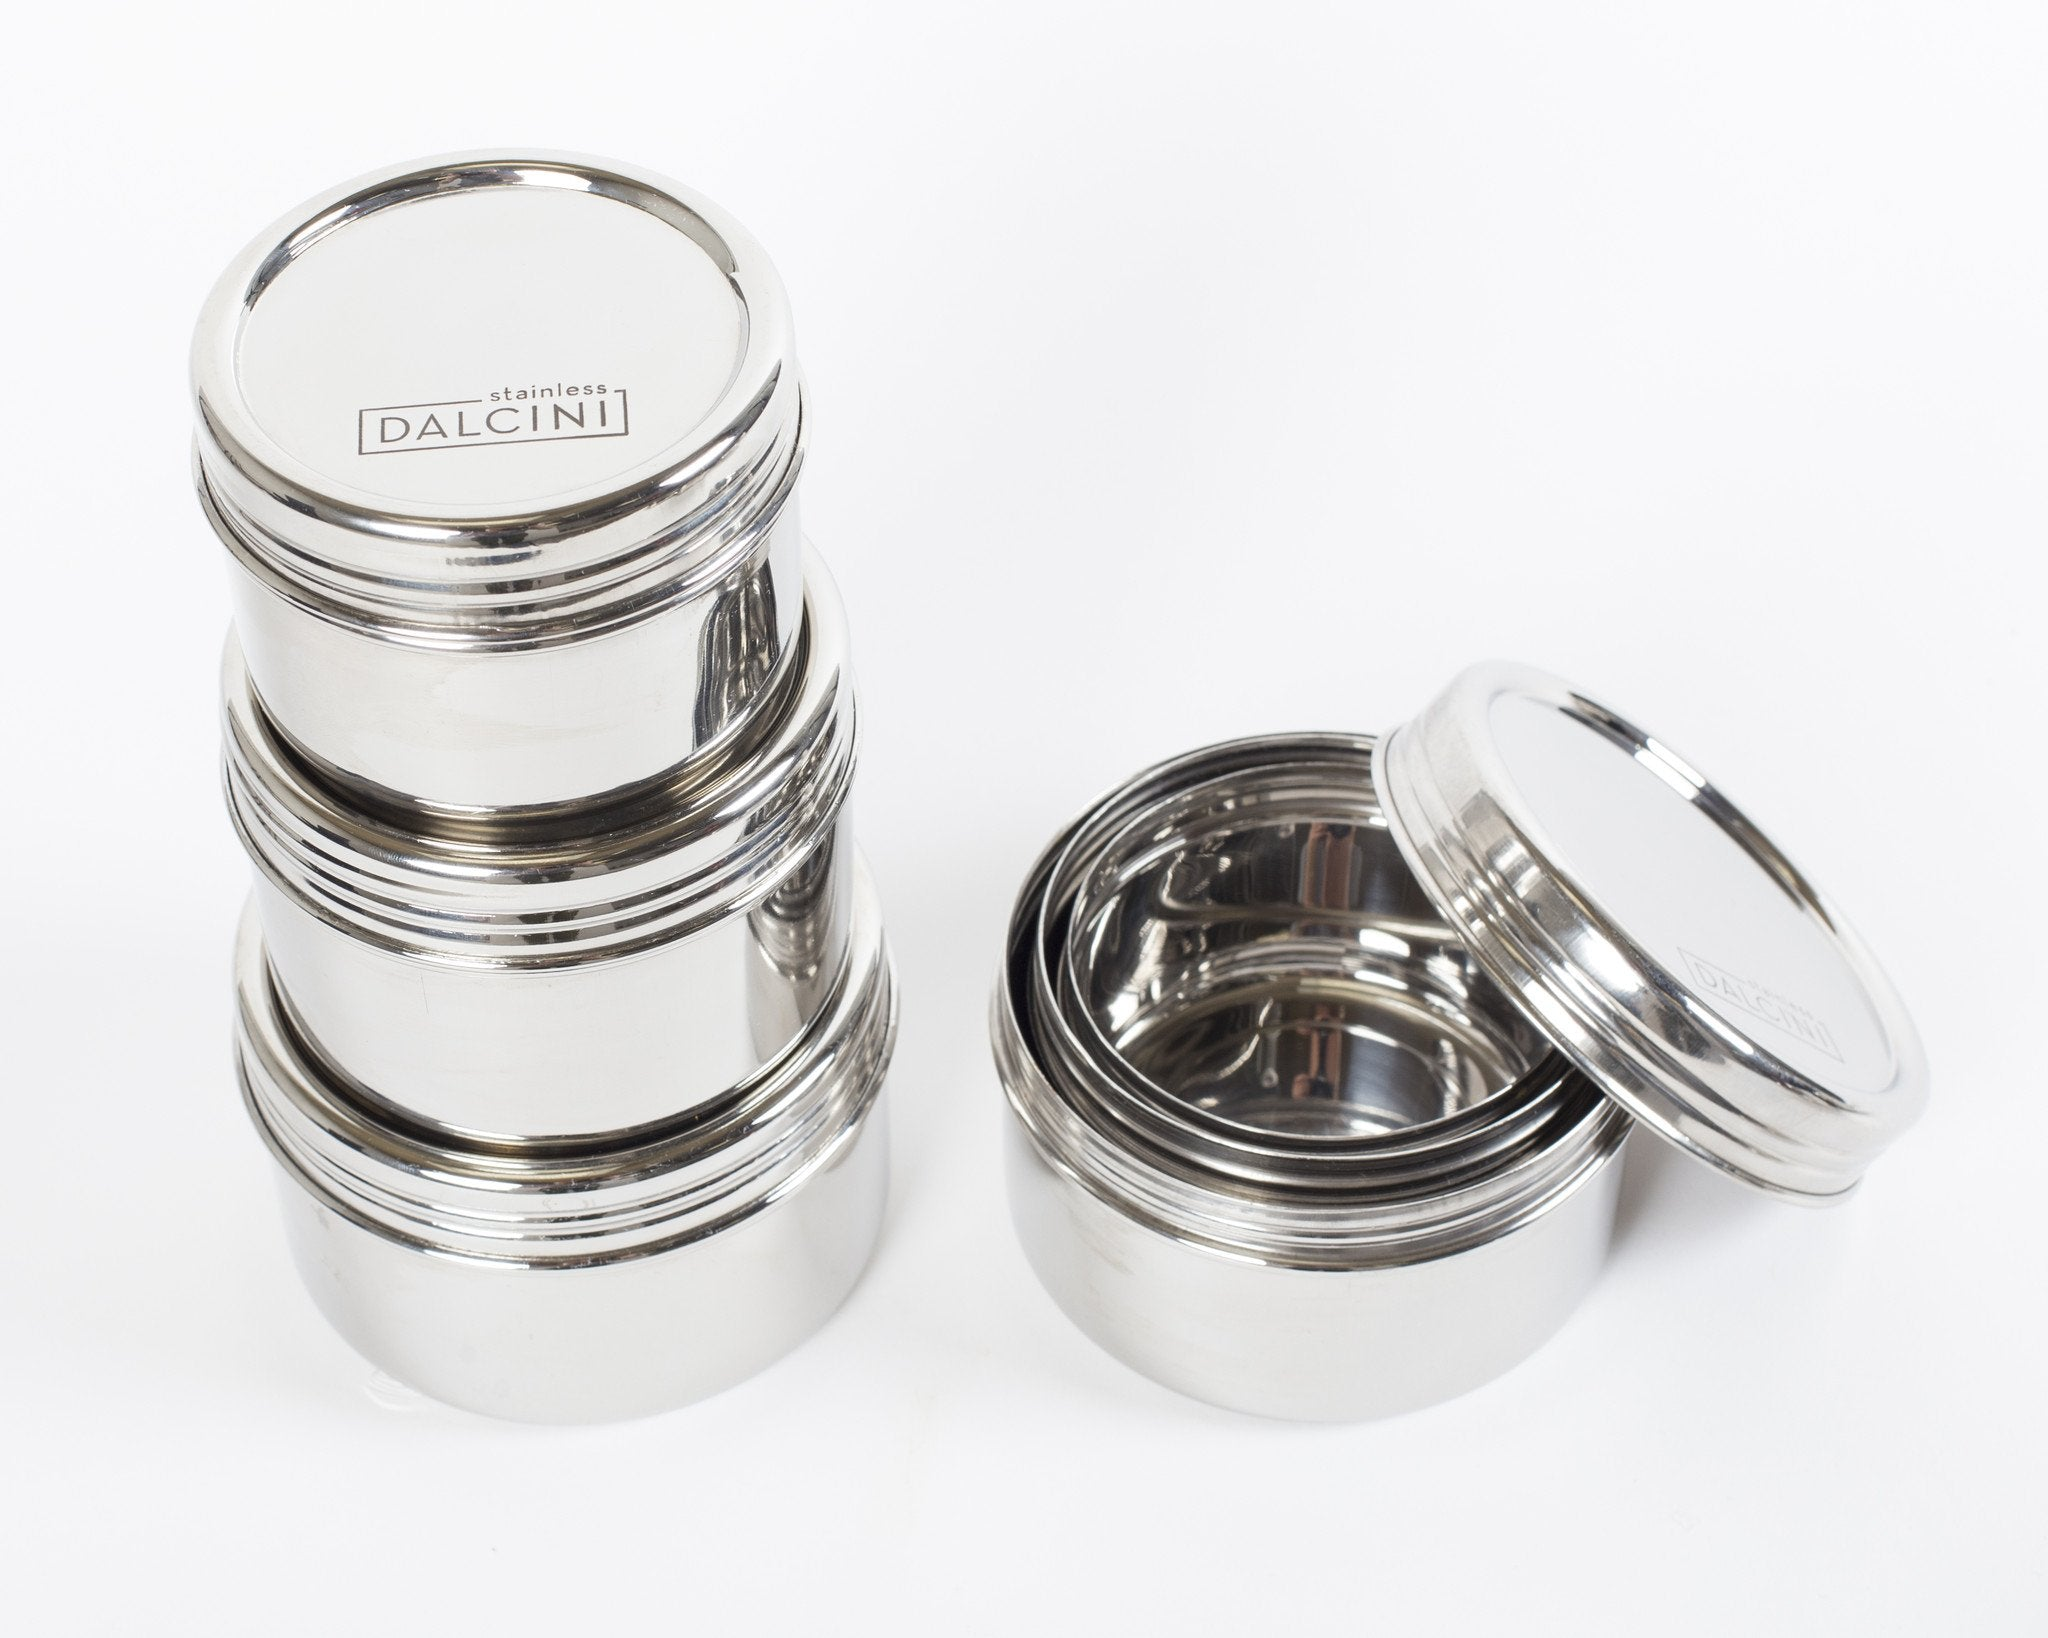 Twist-Top Trio - dalcinistainless